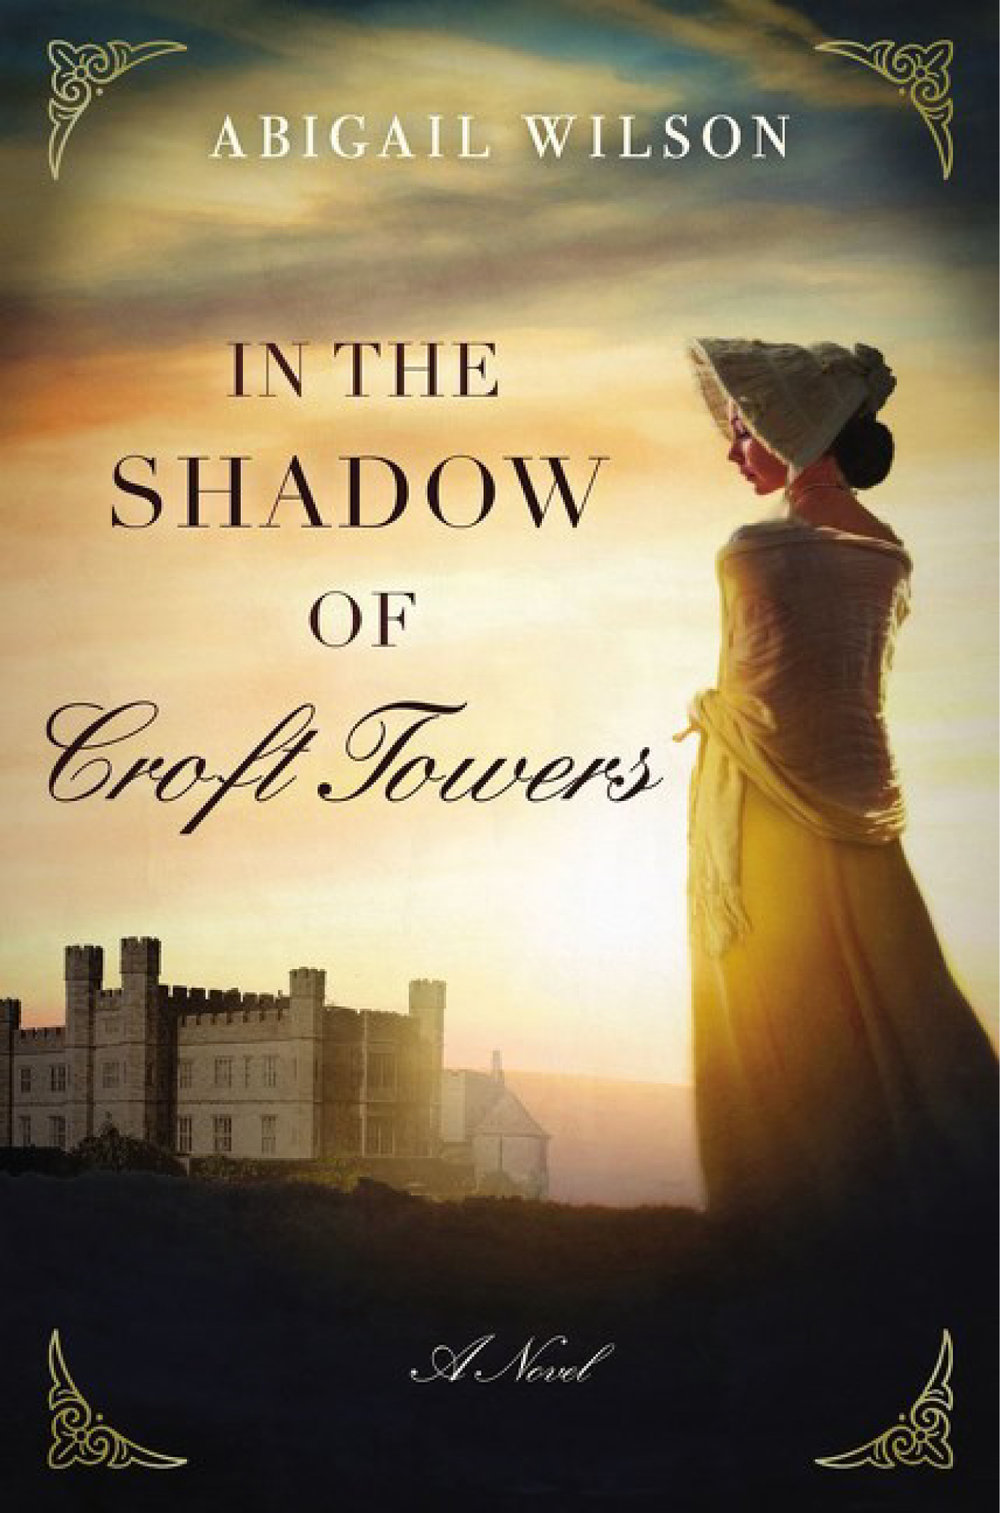 cover - Shadow of Croft Towers.jpg